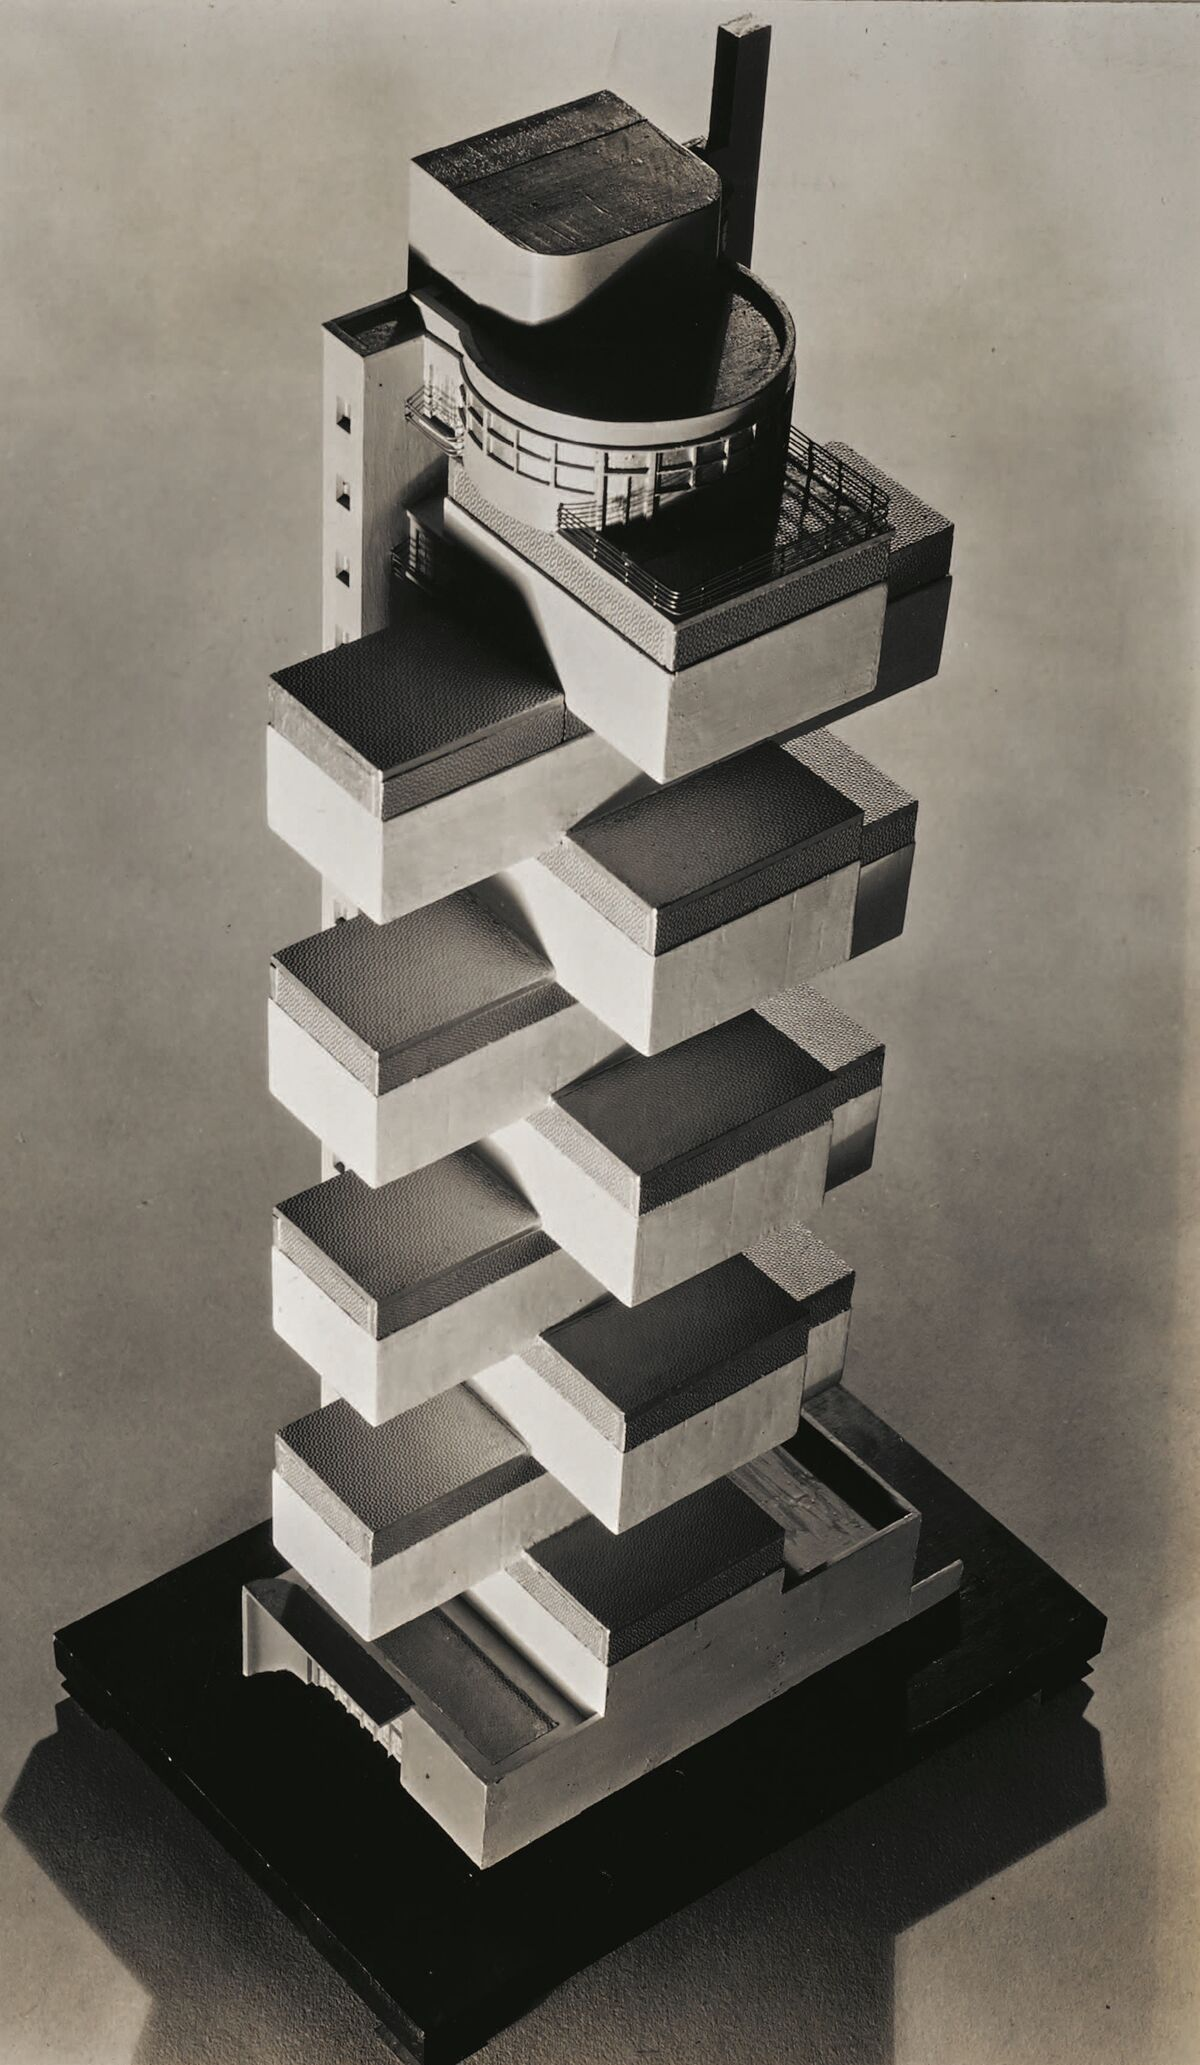 Howe and Lescaze, The Museum of Modern Art, 1930. Courtesy of ARTBOOK | D.A.P.